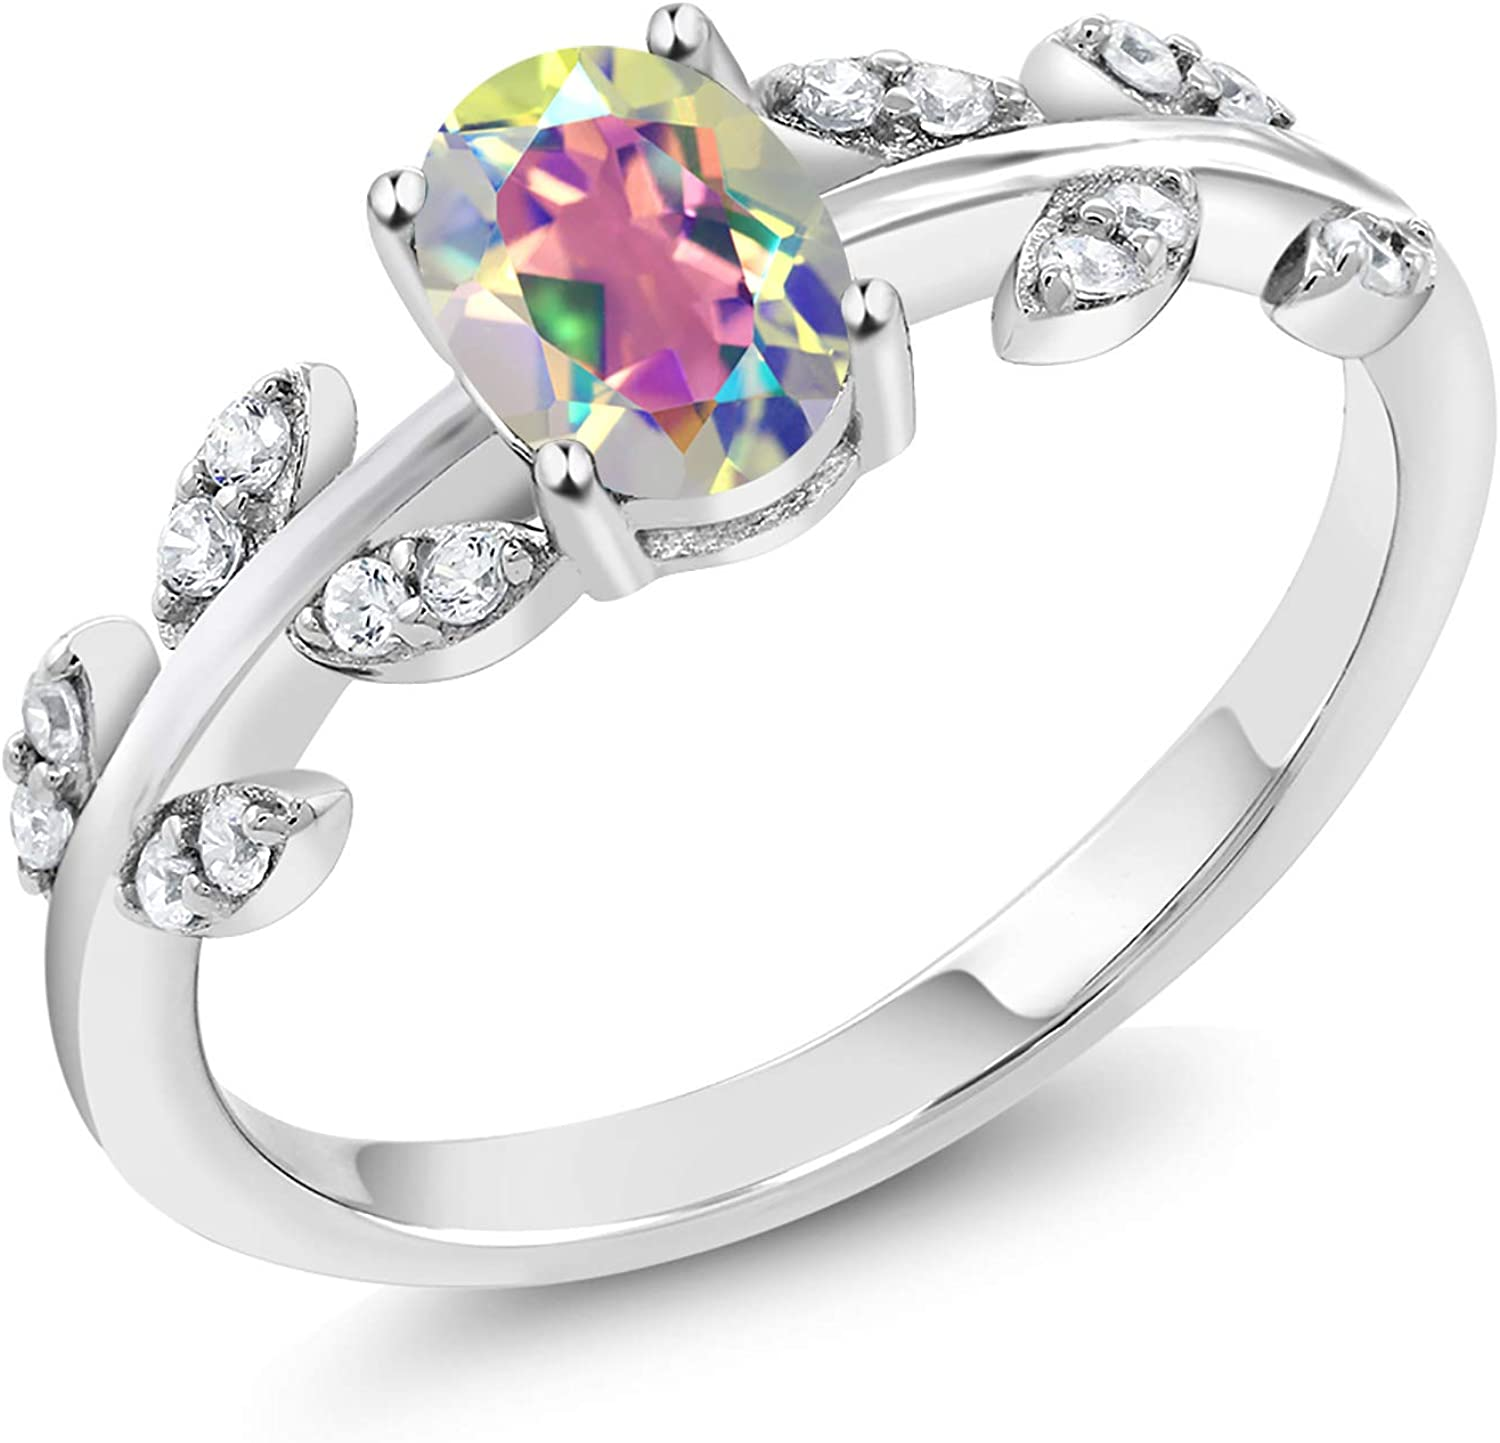 Gem Stone King Sterling Silver Mercury Mist Mystic Topaz Women's Olive Vine Ring (1.01 cttw Oval Available 5,6,7,8,9)